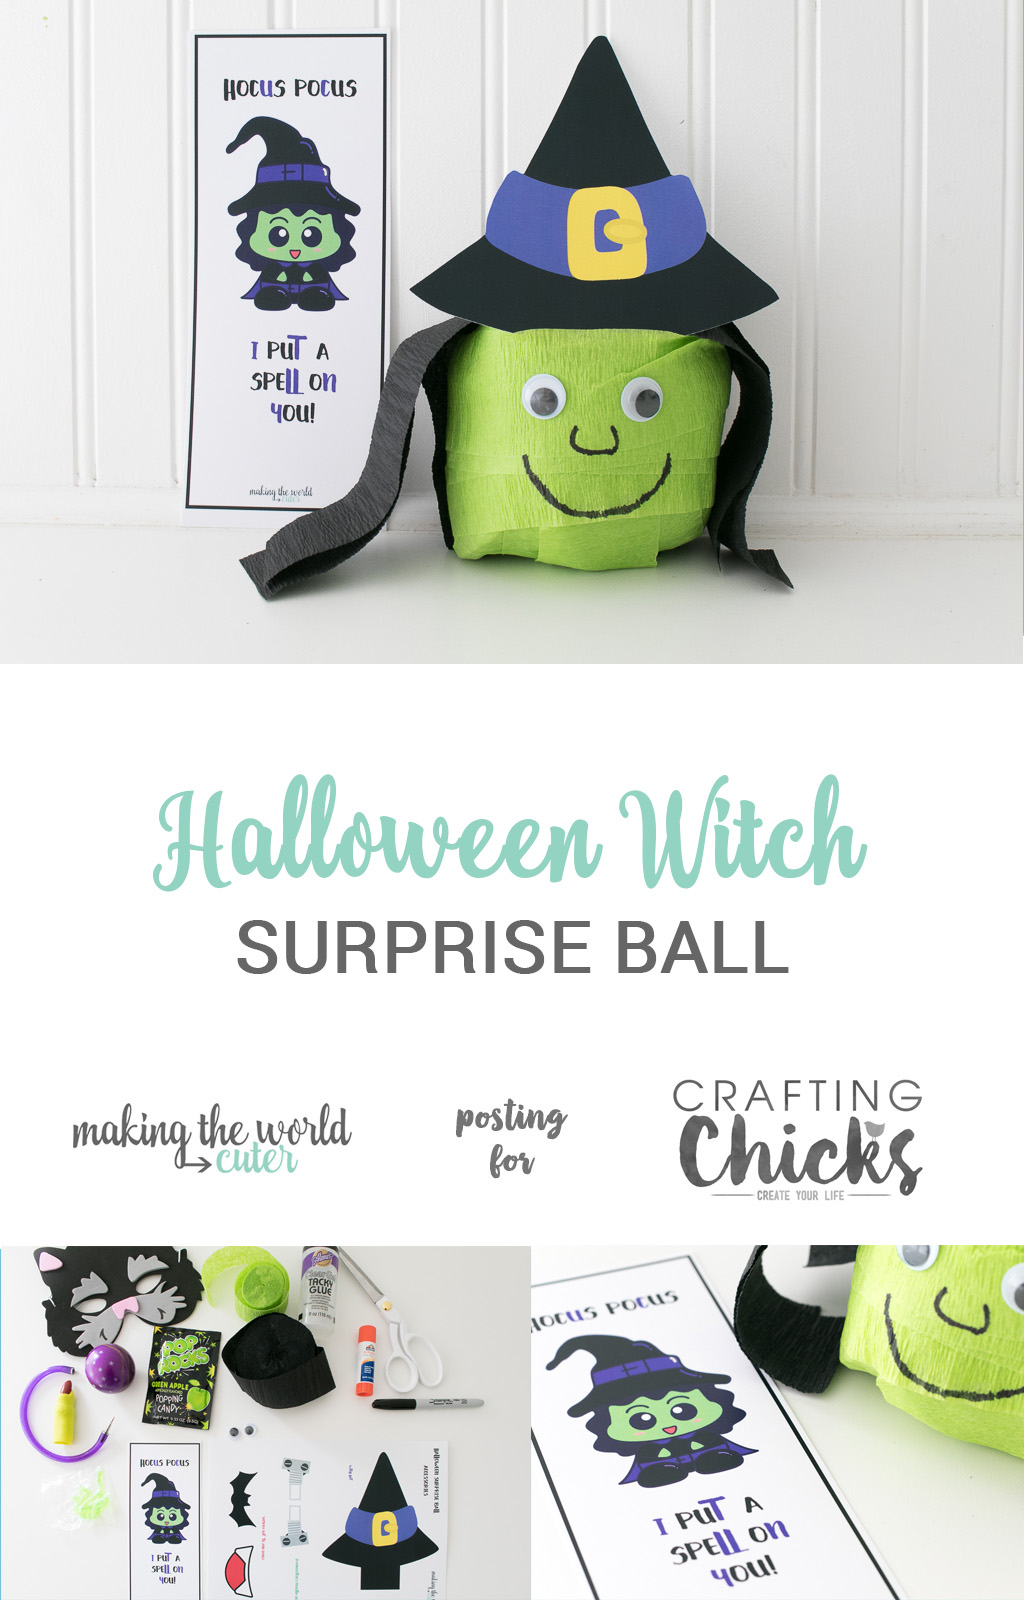 Halloween Witch Surprise Ball